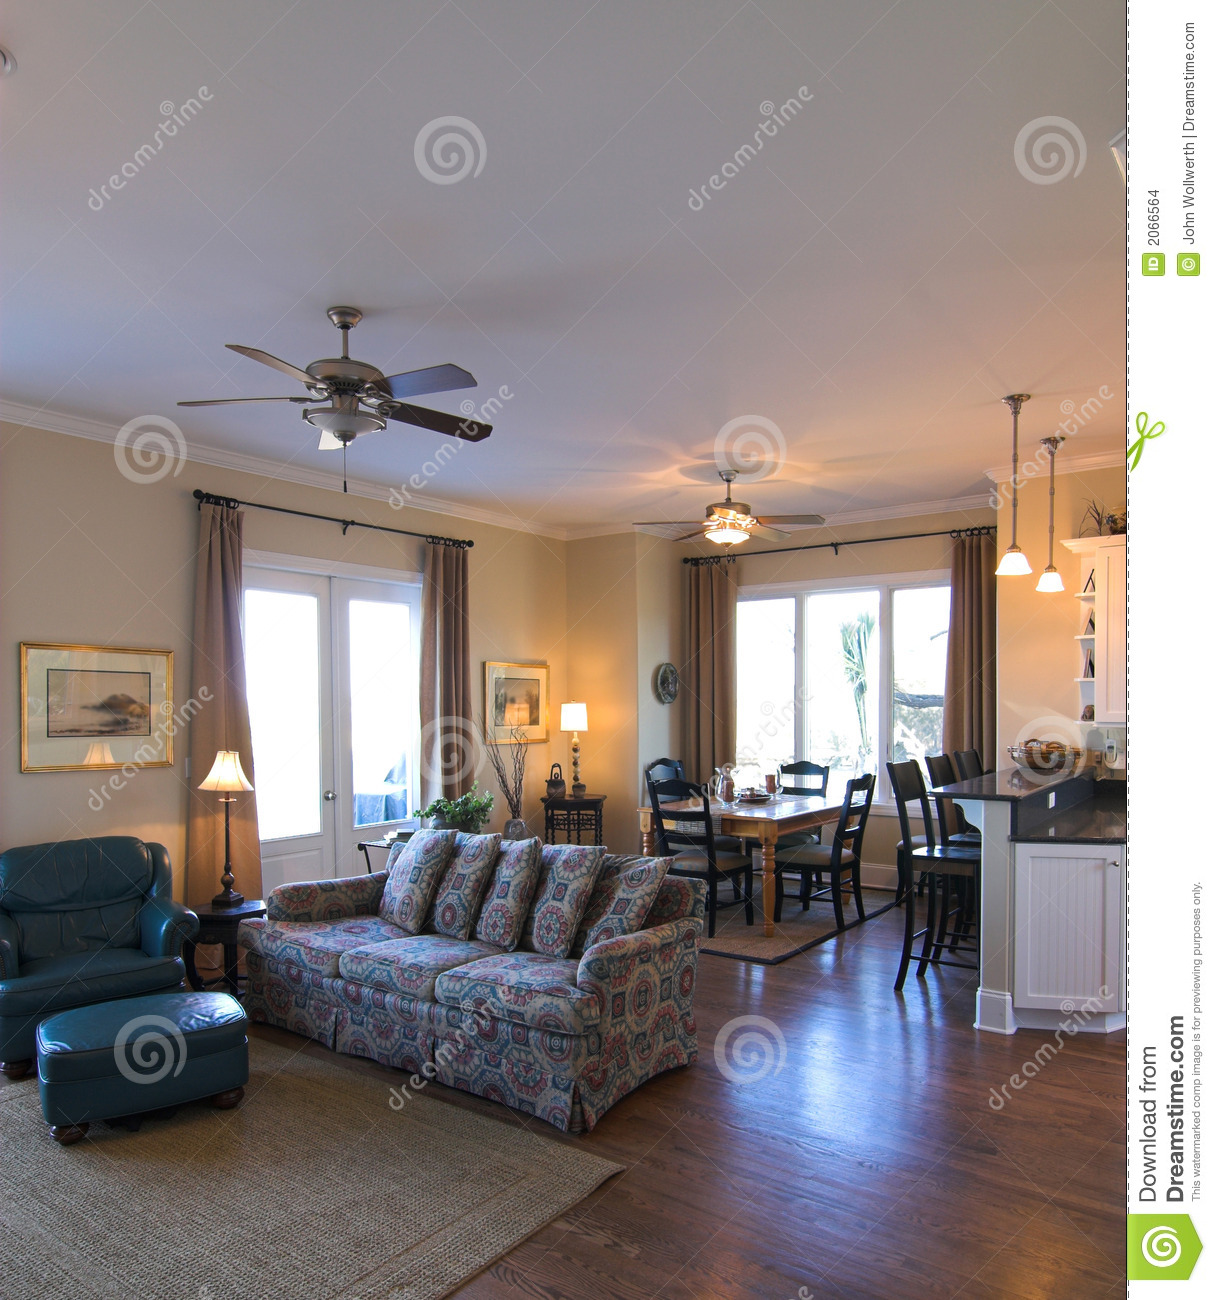 Open living room and dining room stock photo image 2066564 for Open kitchen dining room and living room design ideas